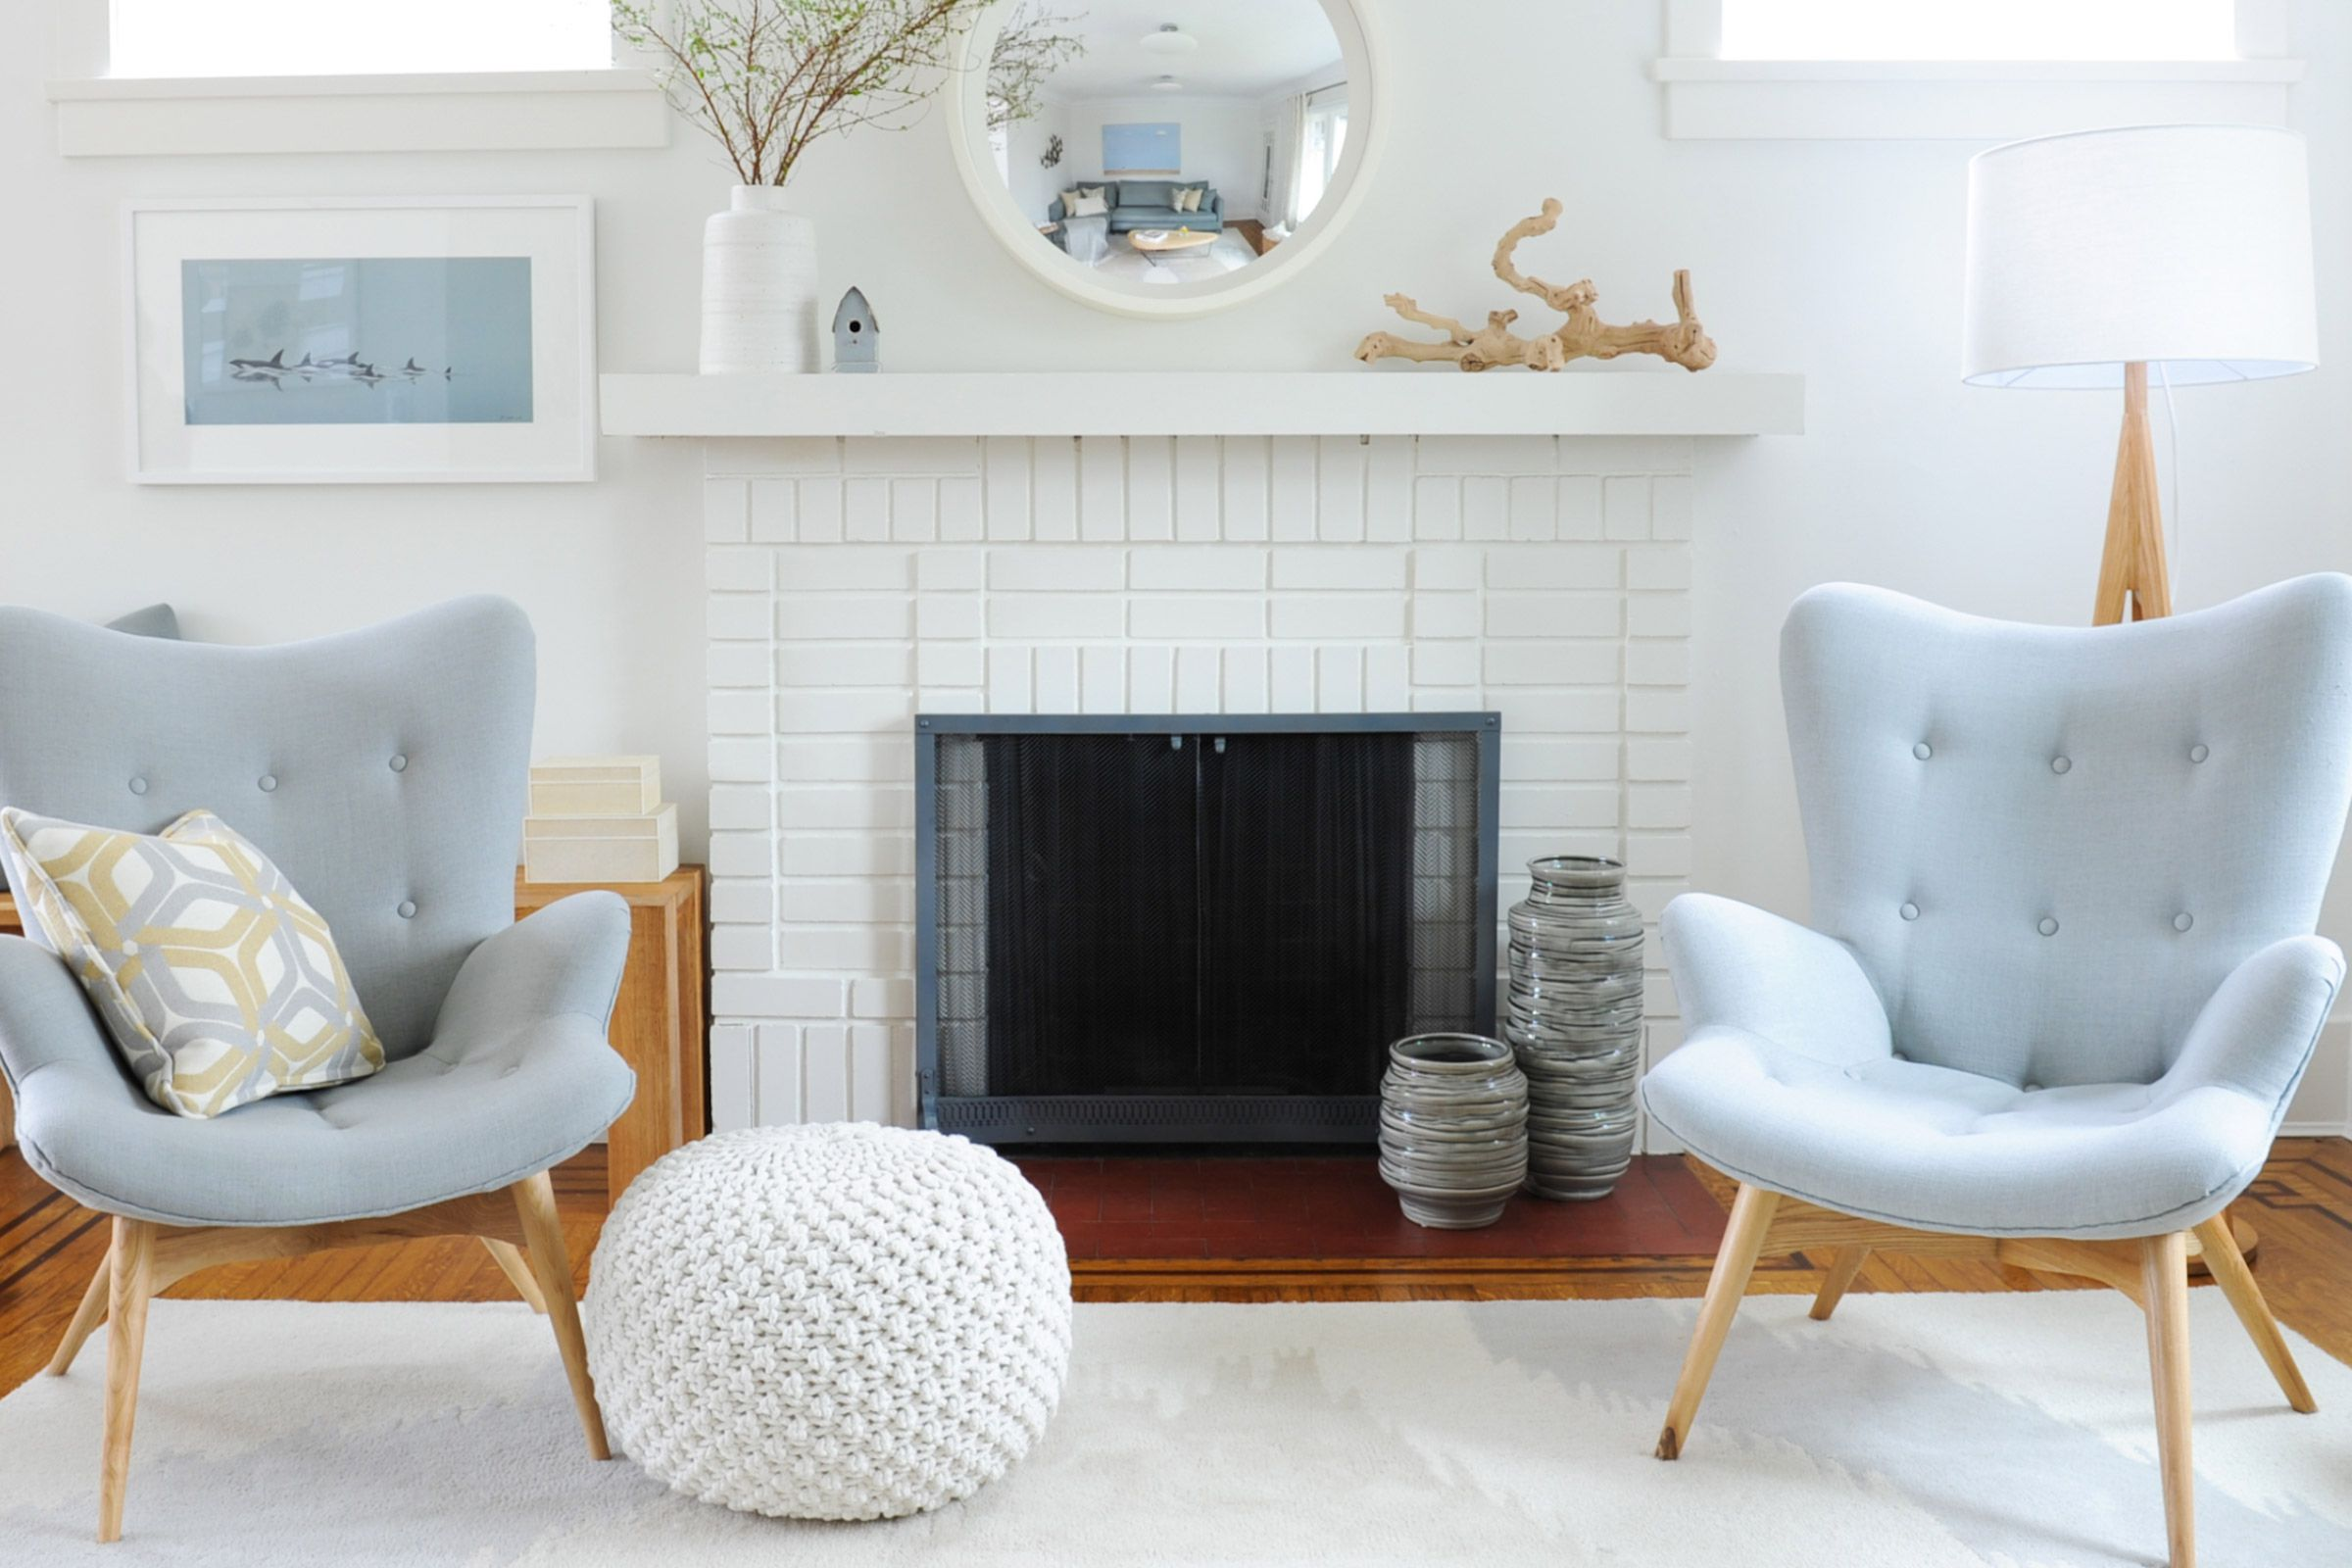 5 Beautiful Accent Wall Ideas To Spruce Up Your Home: 32 Ways To Refresh A Brick Fireplace